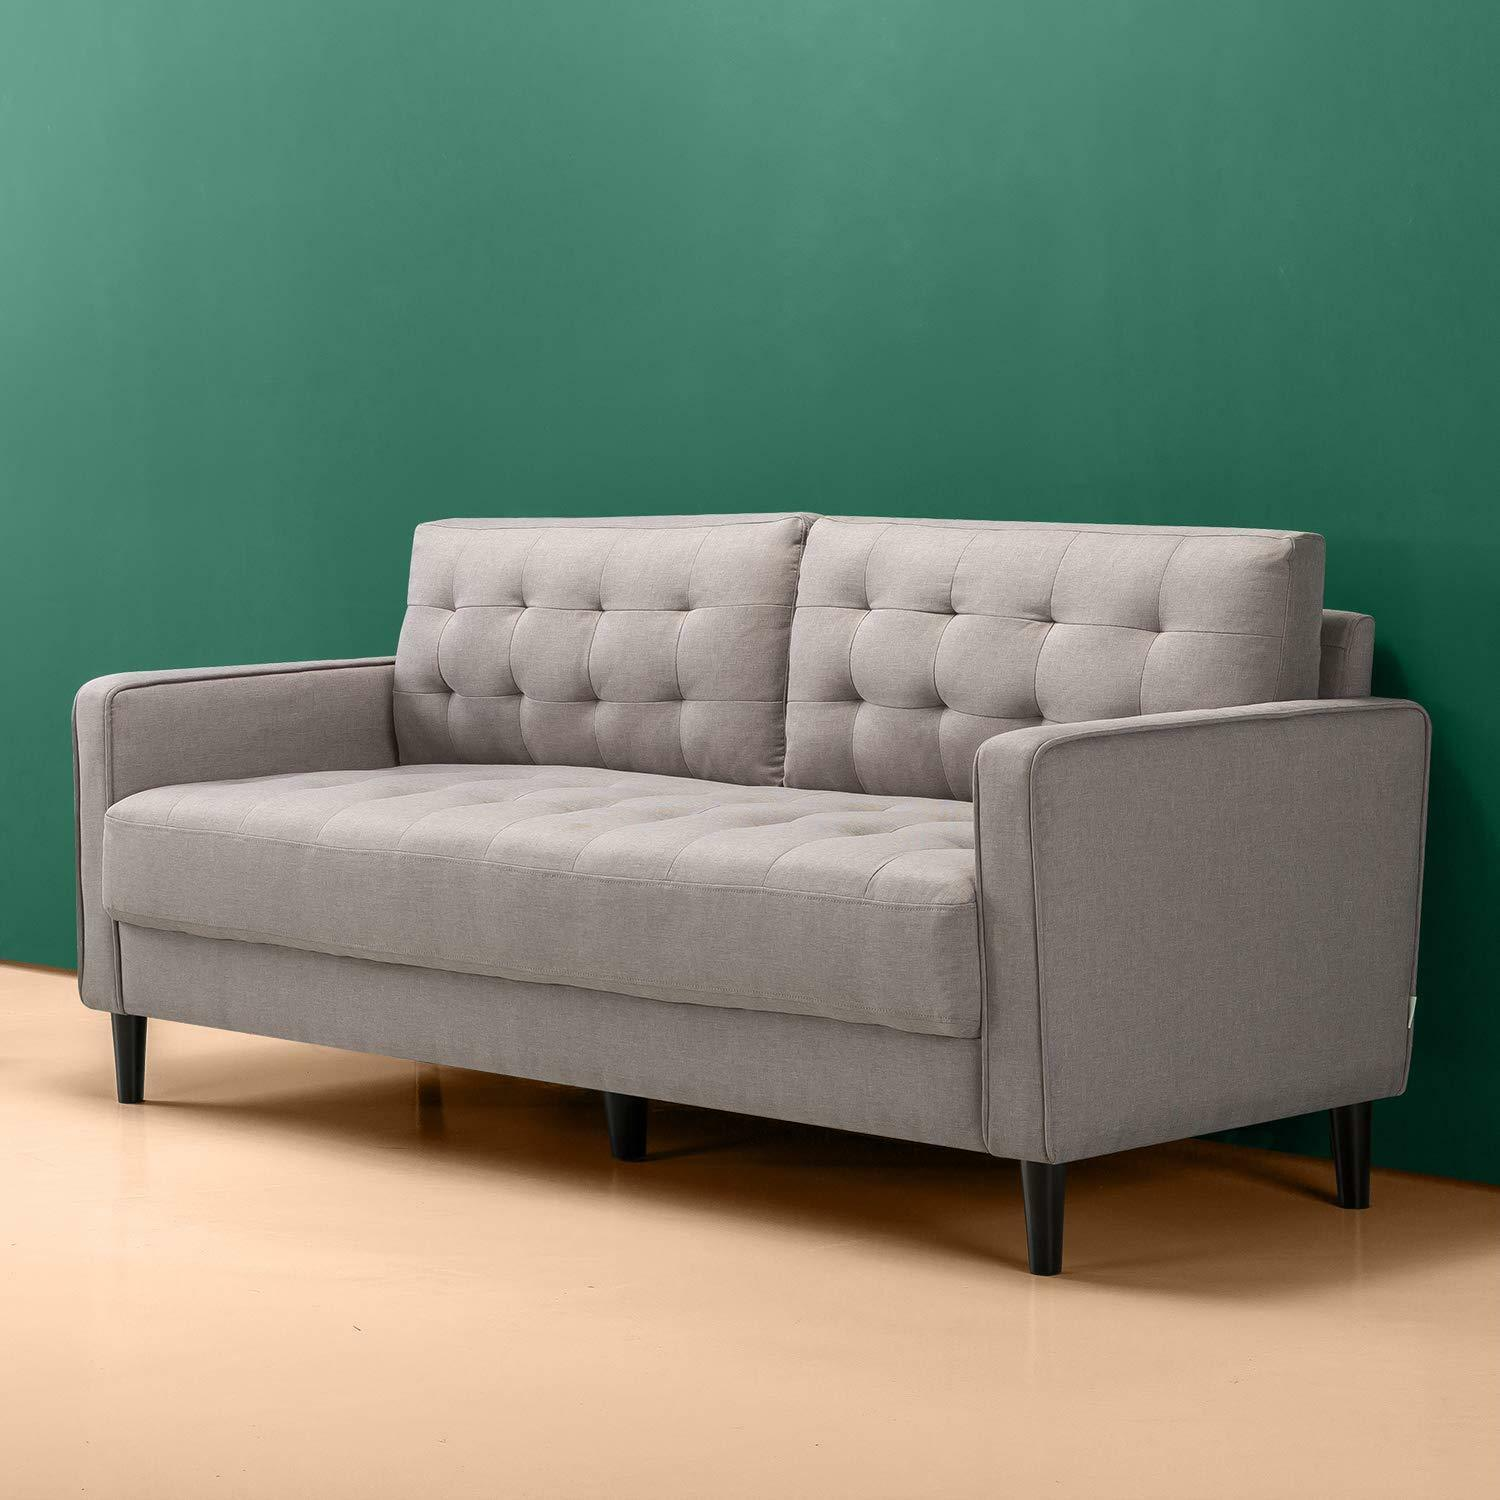 bedroom couch